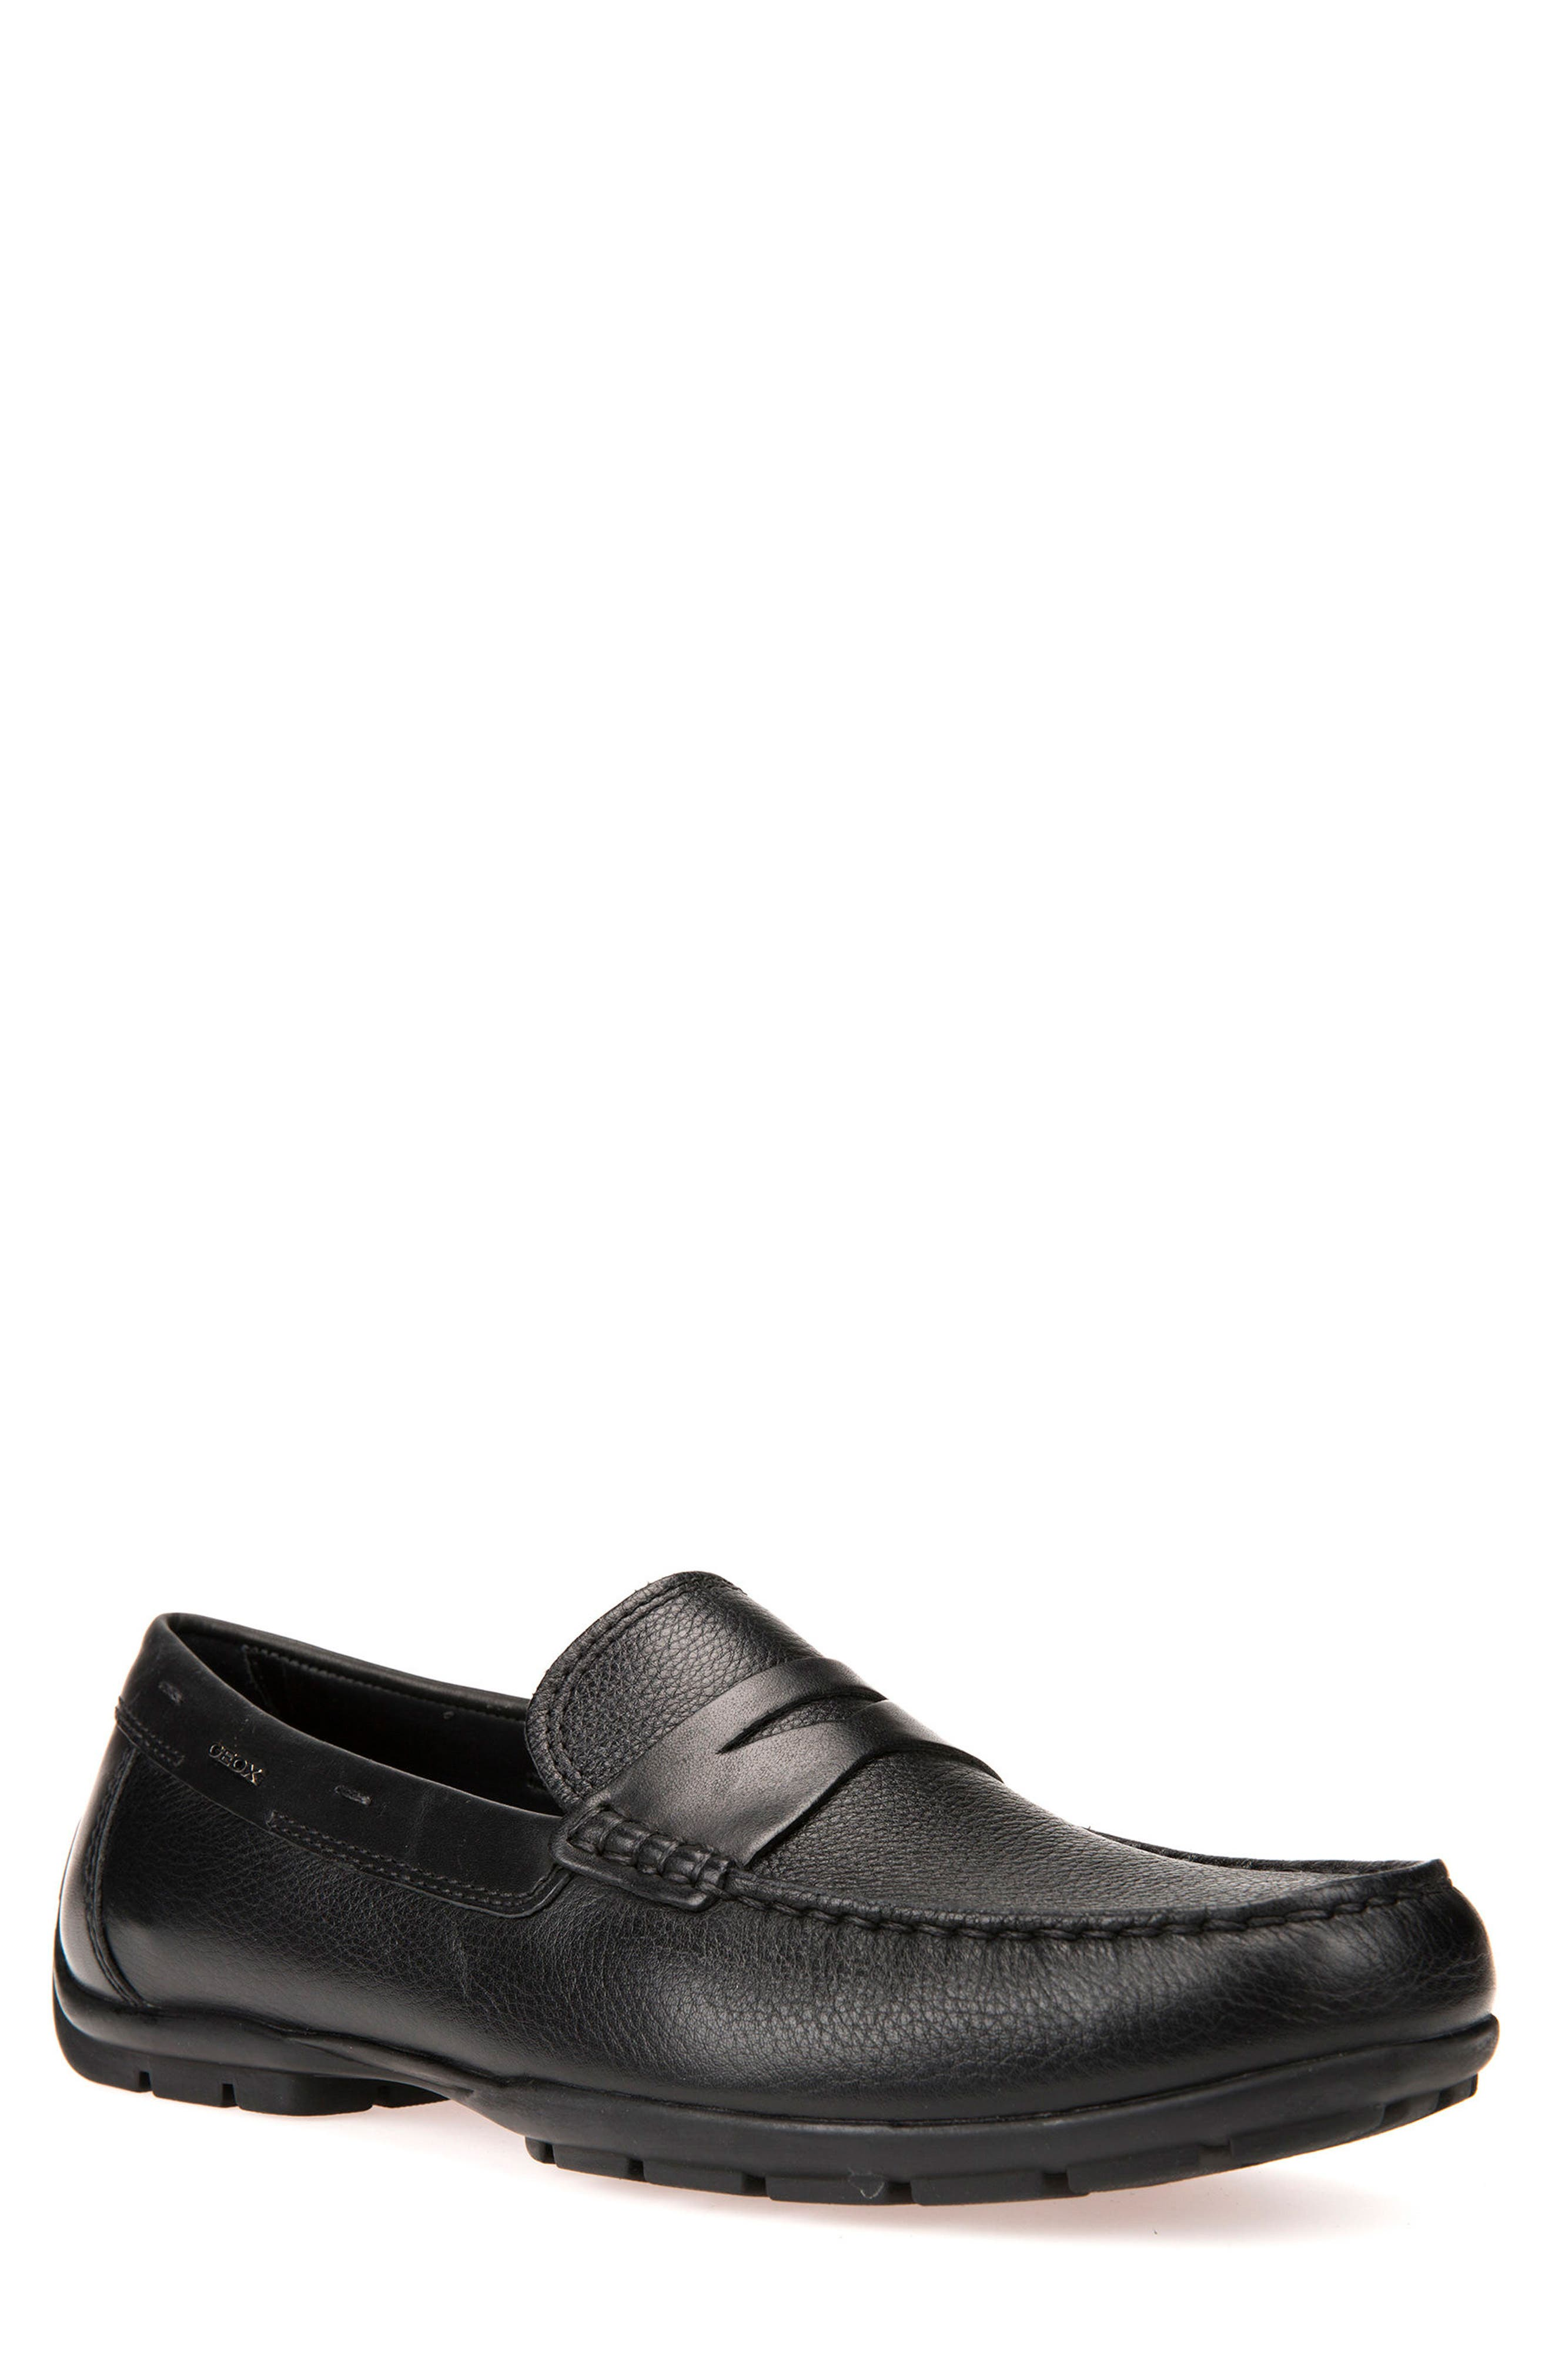 Monet 2Fit 13 Driving Moccasin,                         Main,                         color, BLACK/ BLACK LEATHER